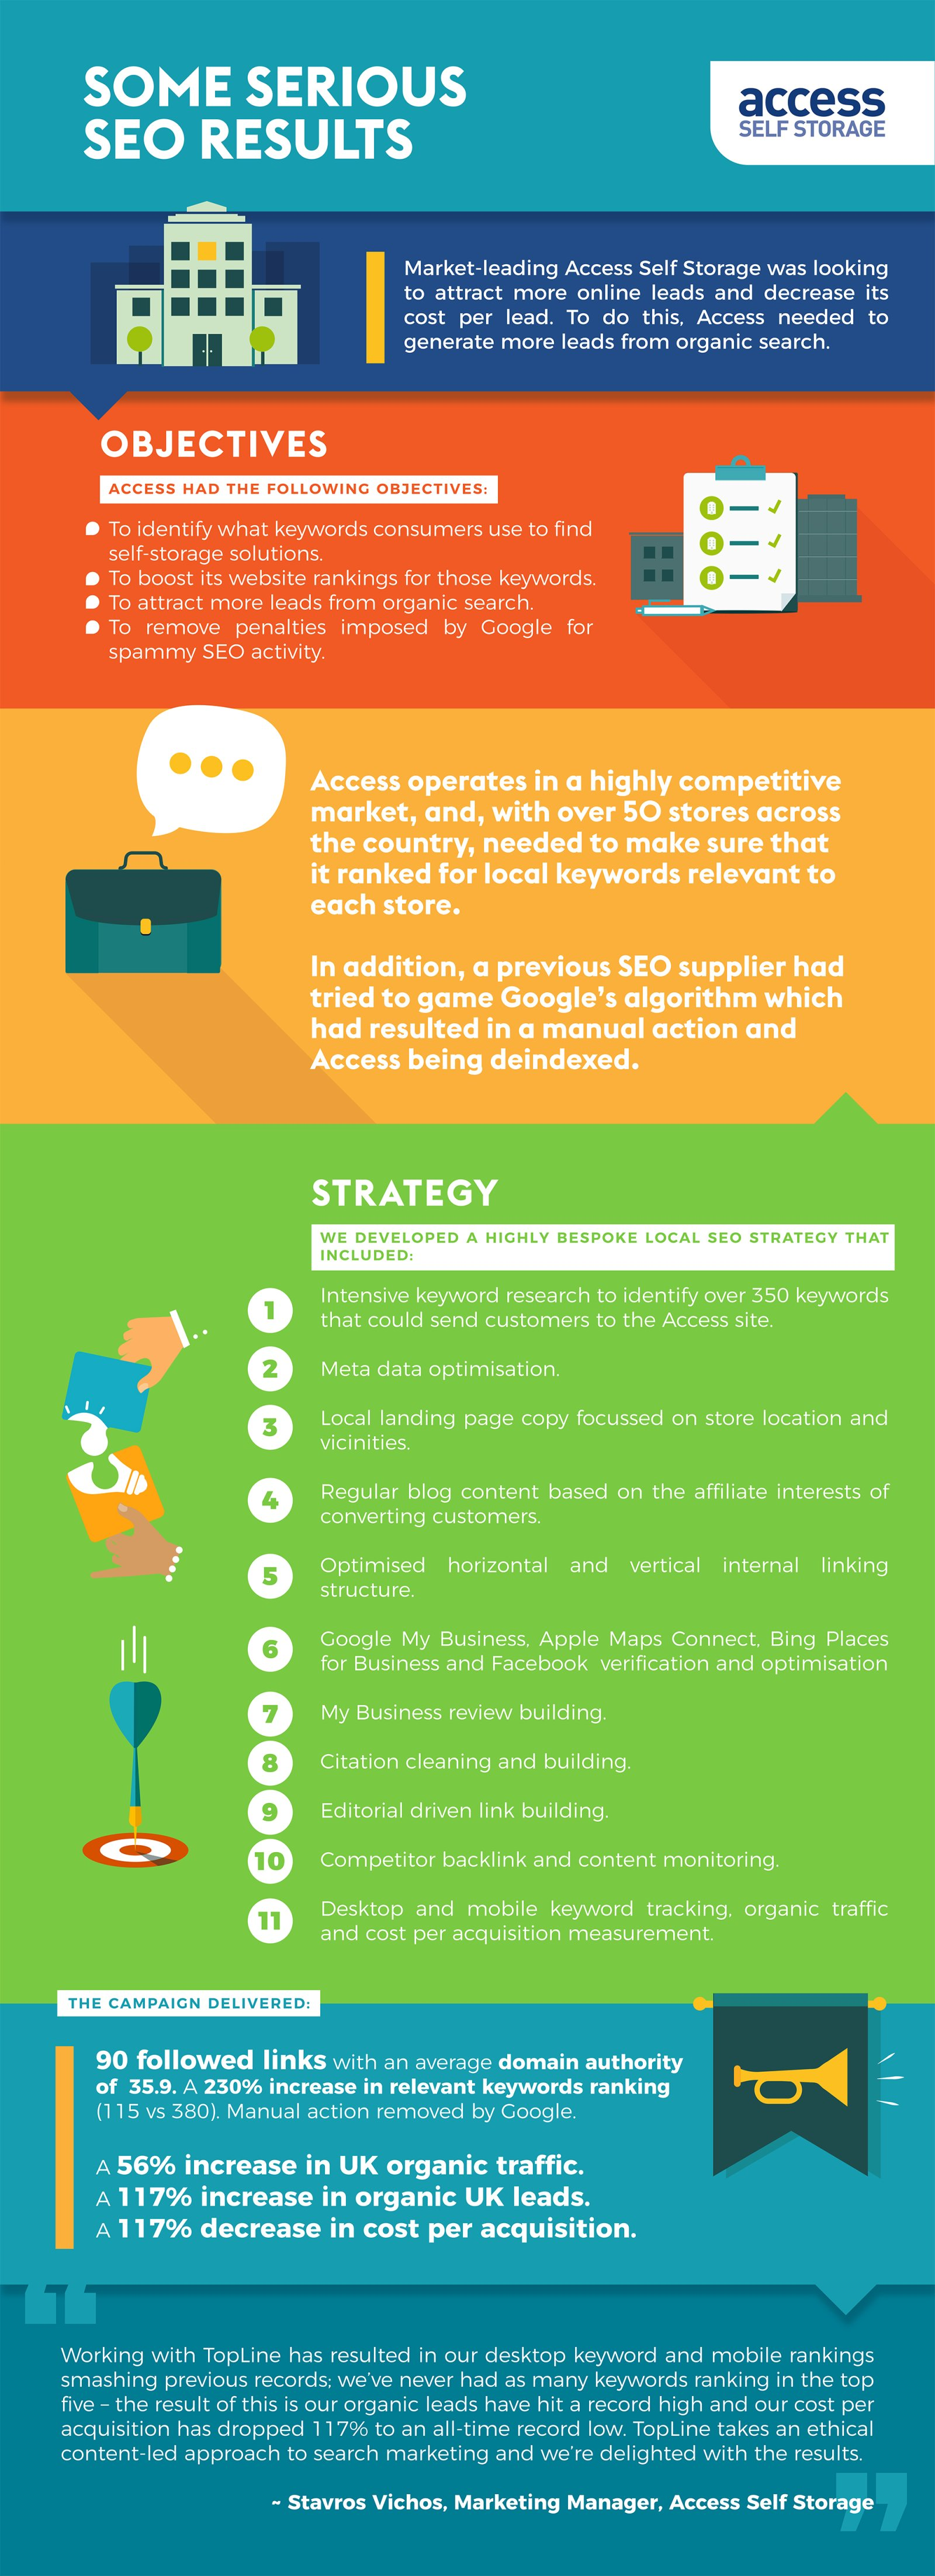 Access Self Storage Case Study Infographic